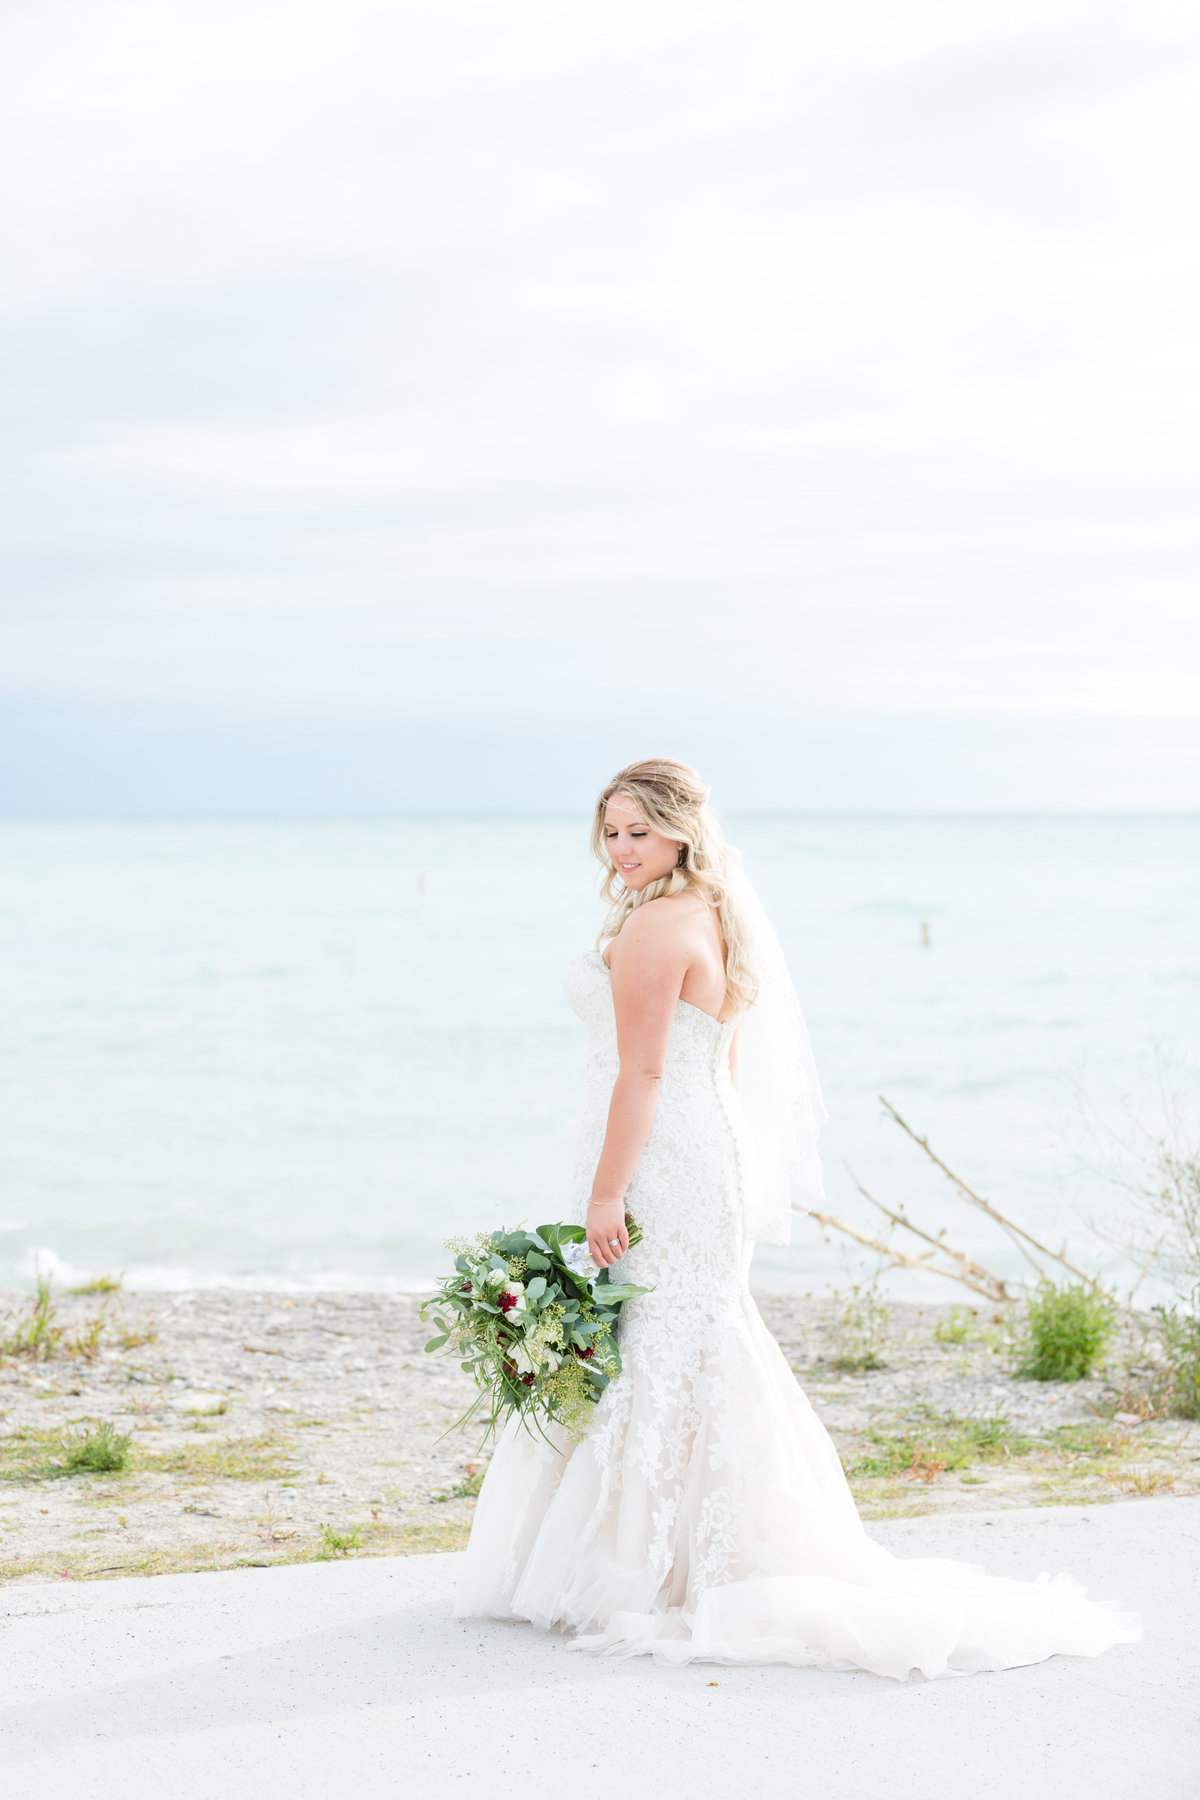 Micaela Joy Photography - Ontario, Canada Wedding and Portrait Photographer - Photo - 23